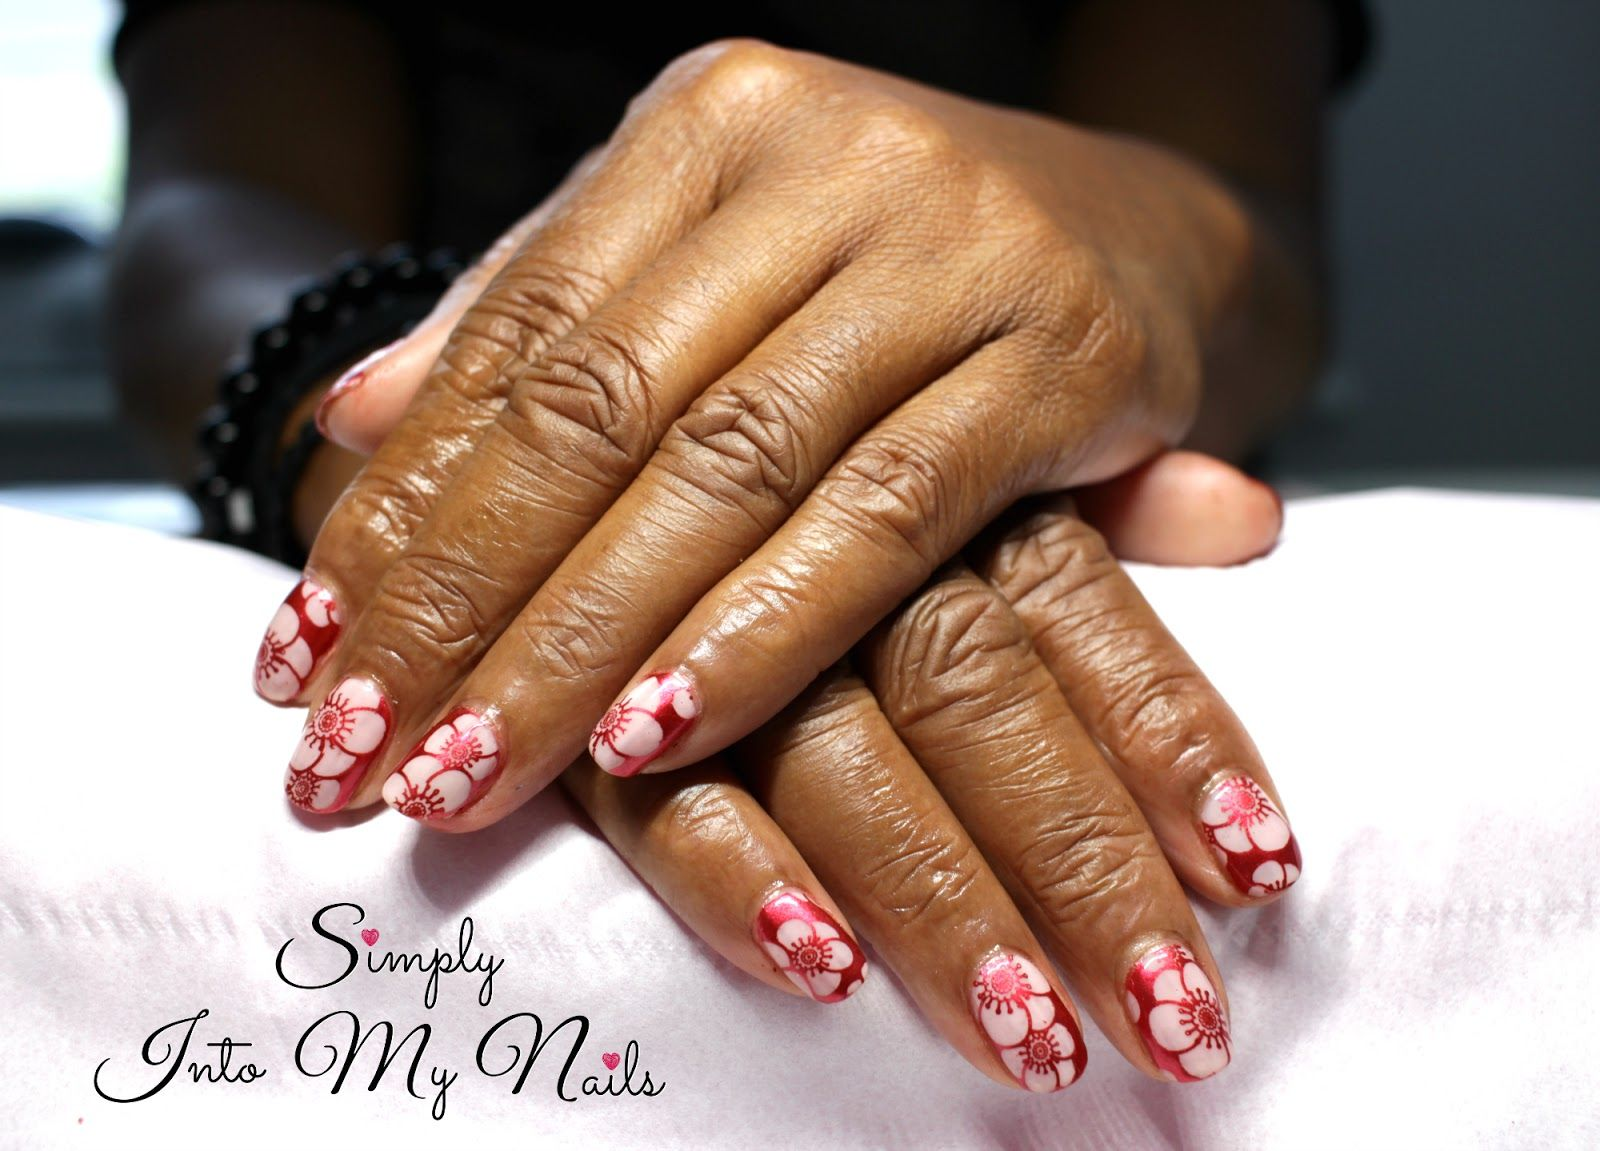 Pictures on Nails are beautifully and simply